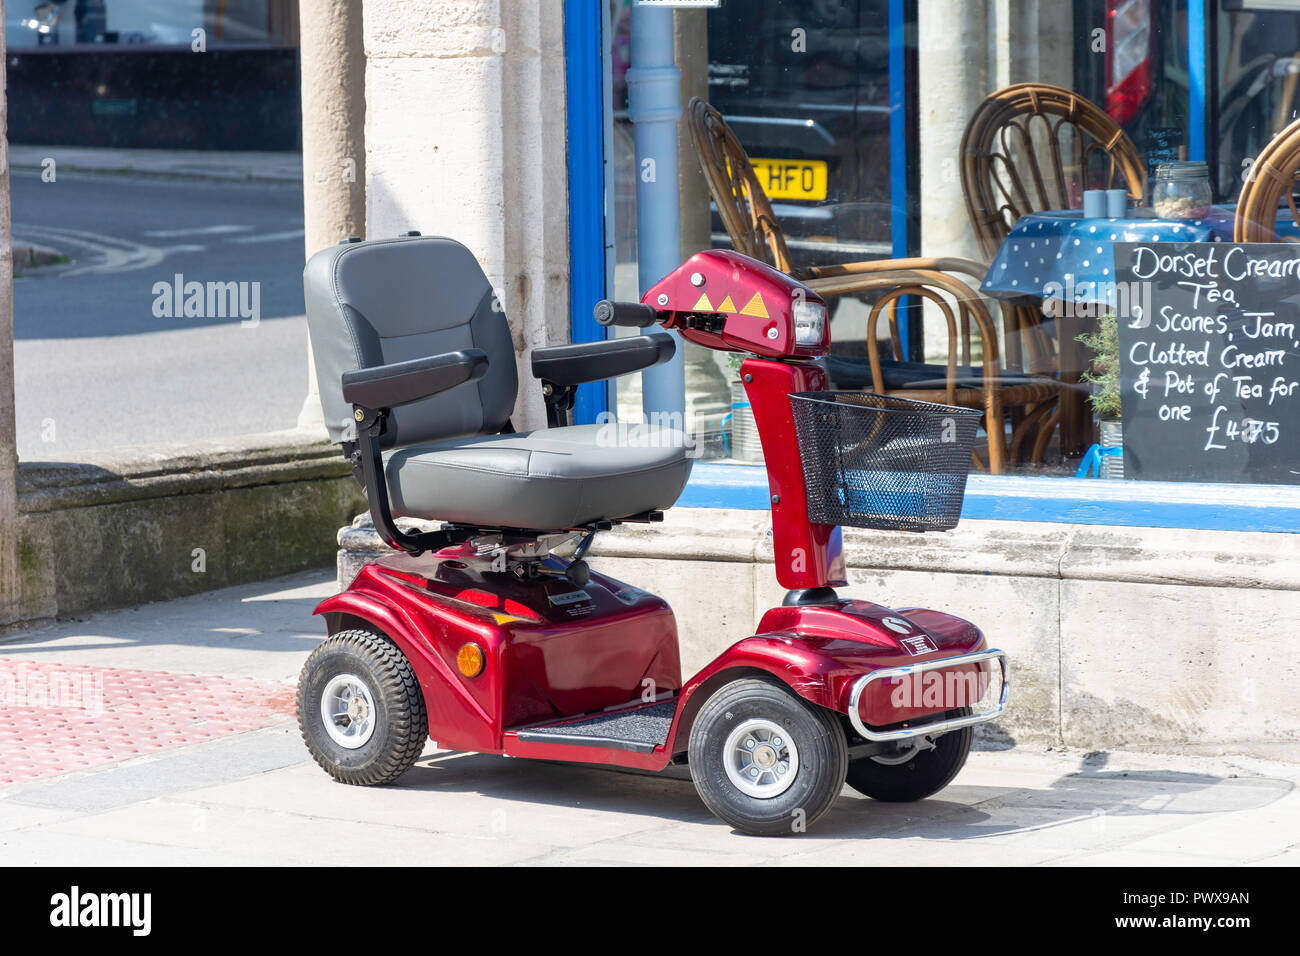 Mobility scooter parked outside cafe, High Street, Swanage, Isle of Purbeck, Dorset, England, United Kingdom - Stock Image